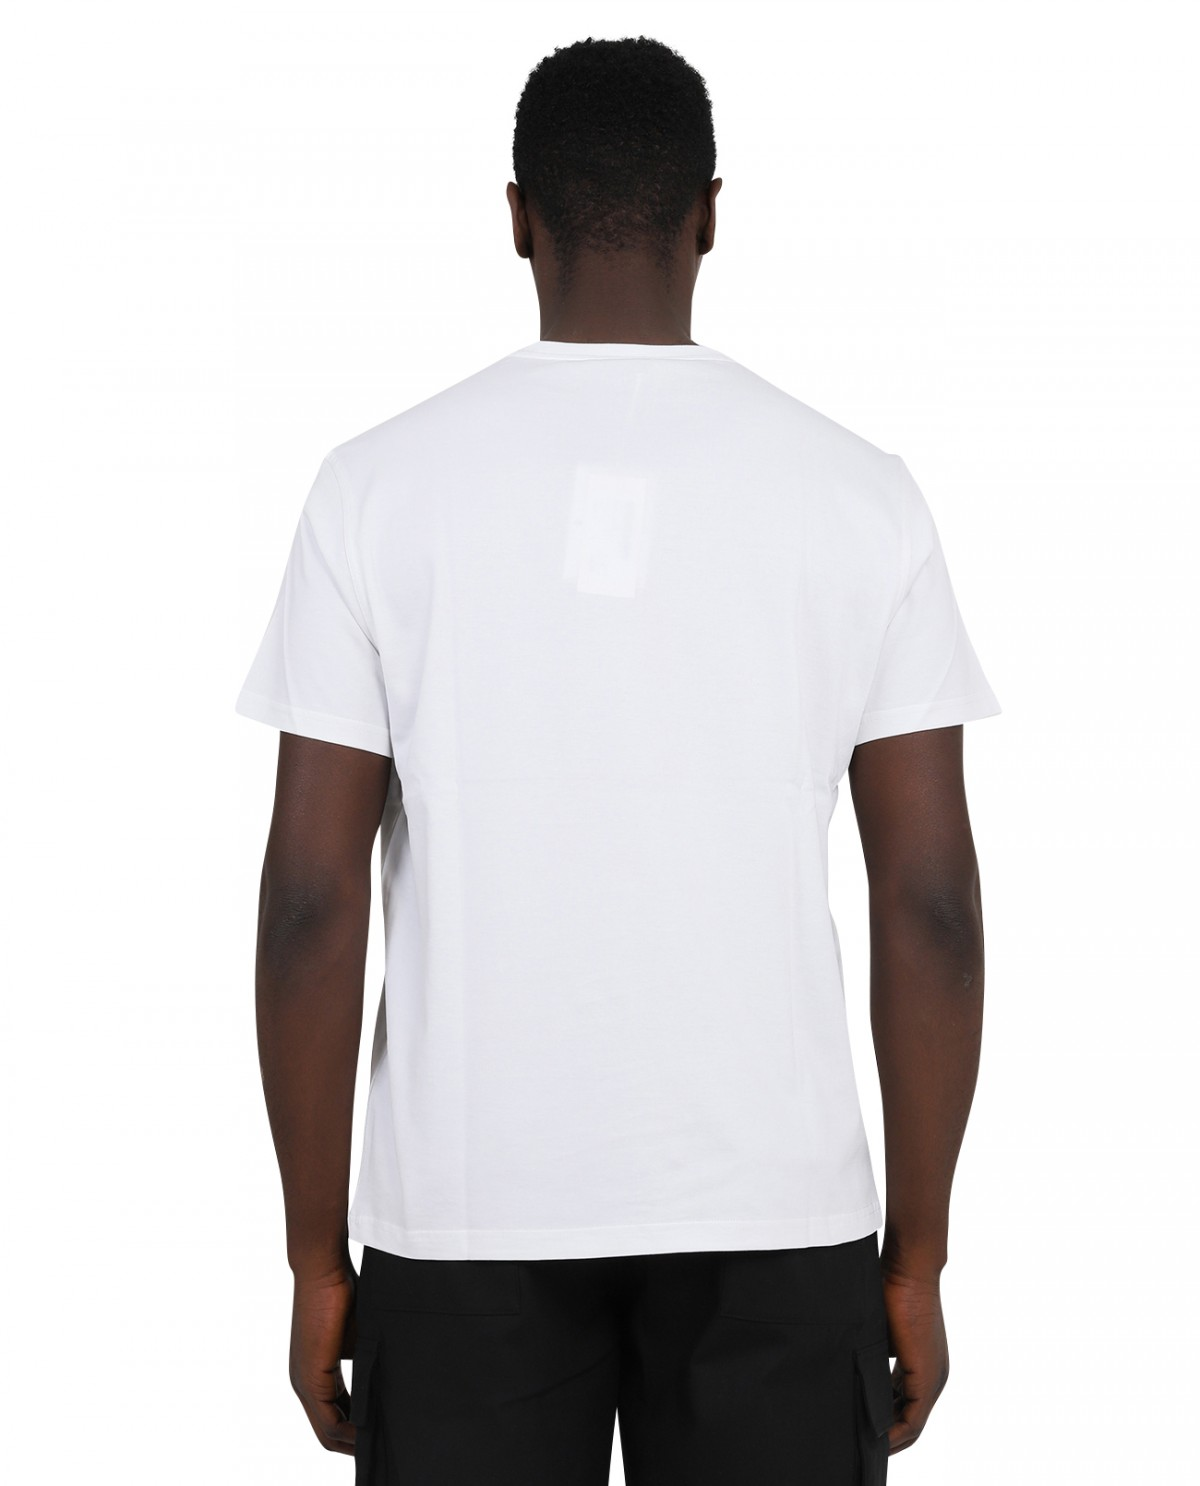 Dior Homme black t-shirt